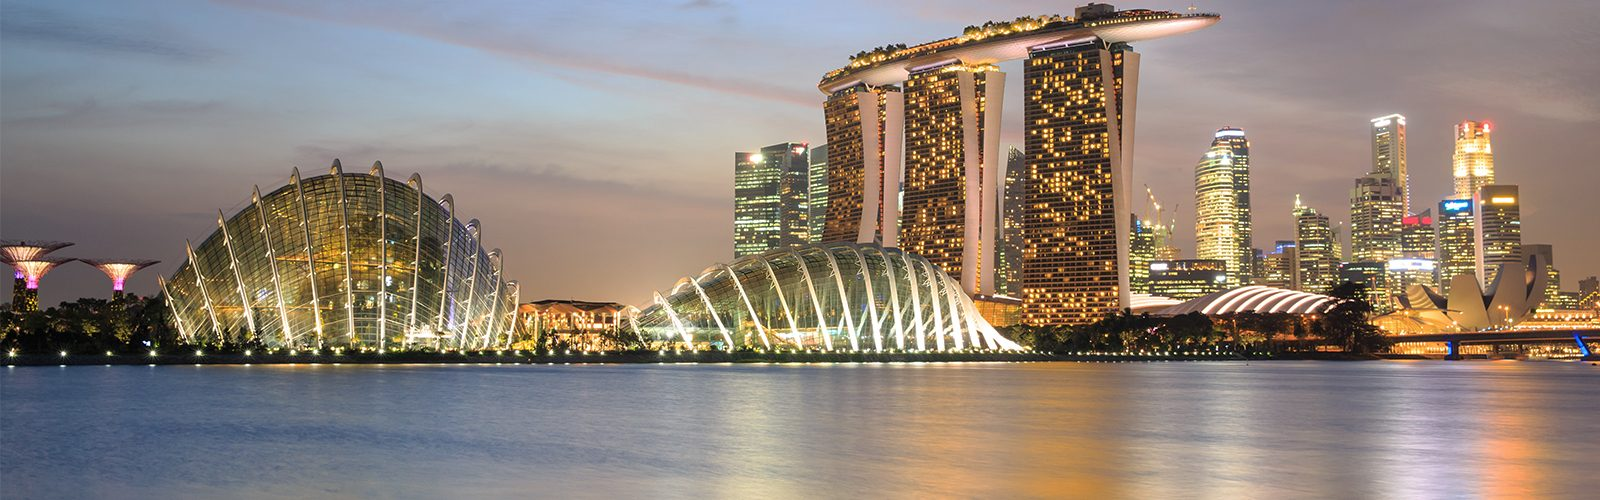 10 Best Food Places To Visit In Singapore Header